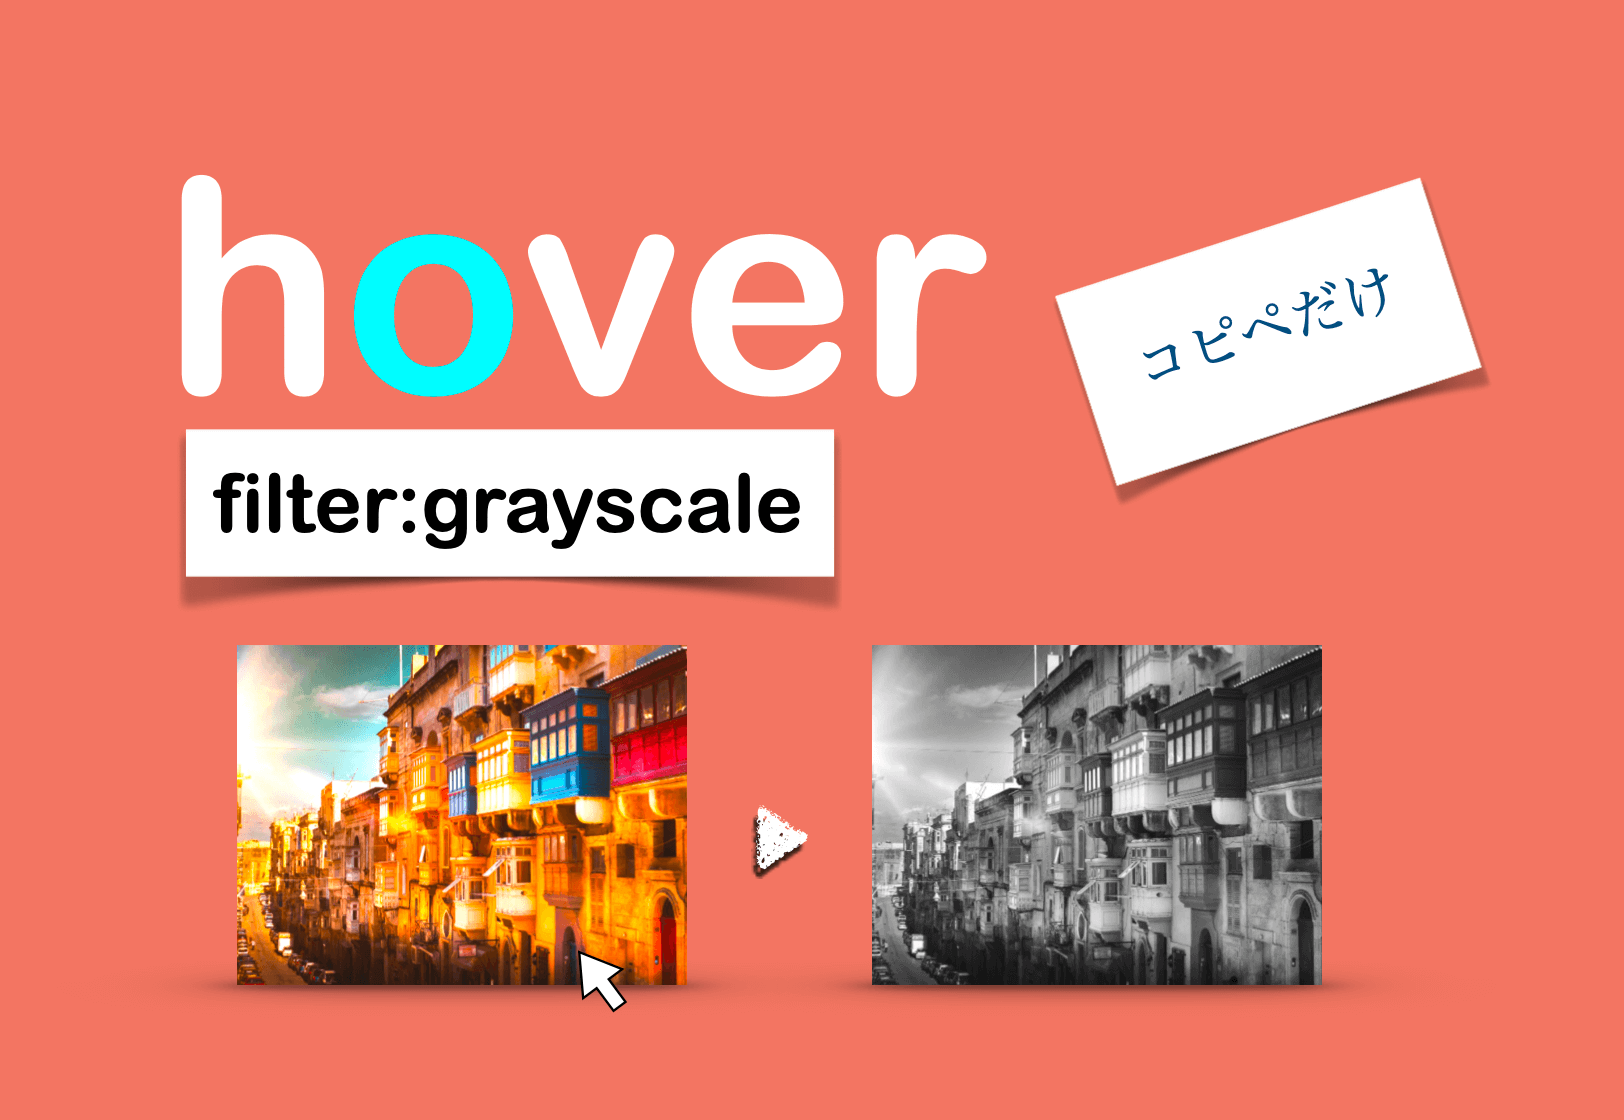 hover-animation-filter-grayscale.png